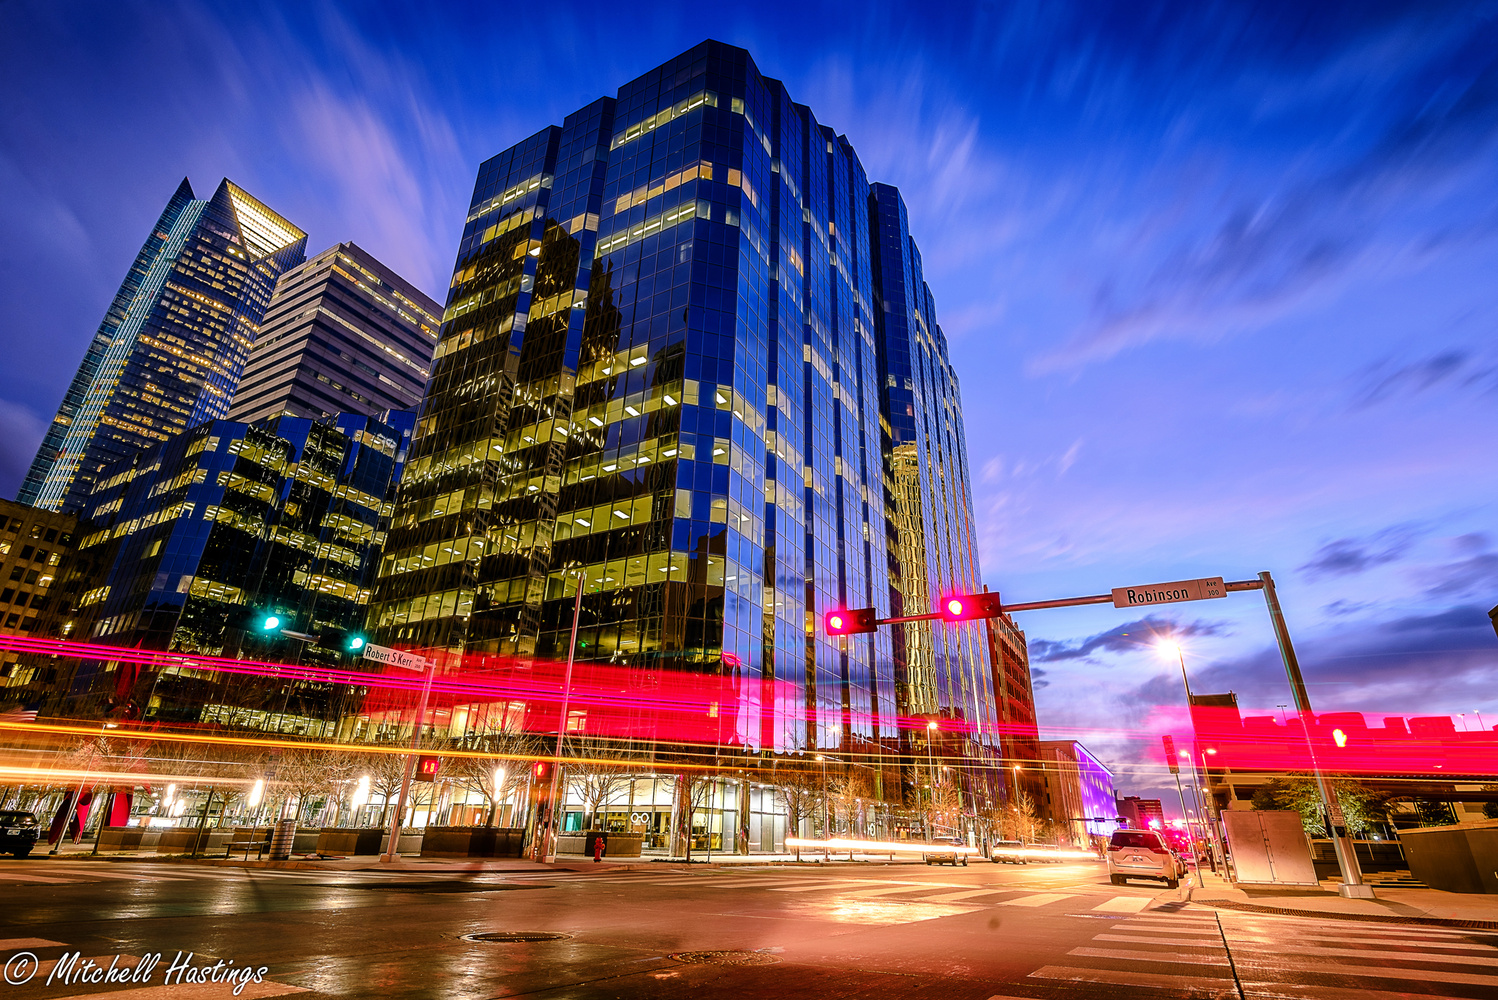 Downtown blue-hour by Mitchell Hastings